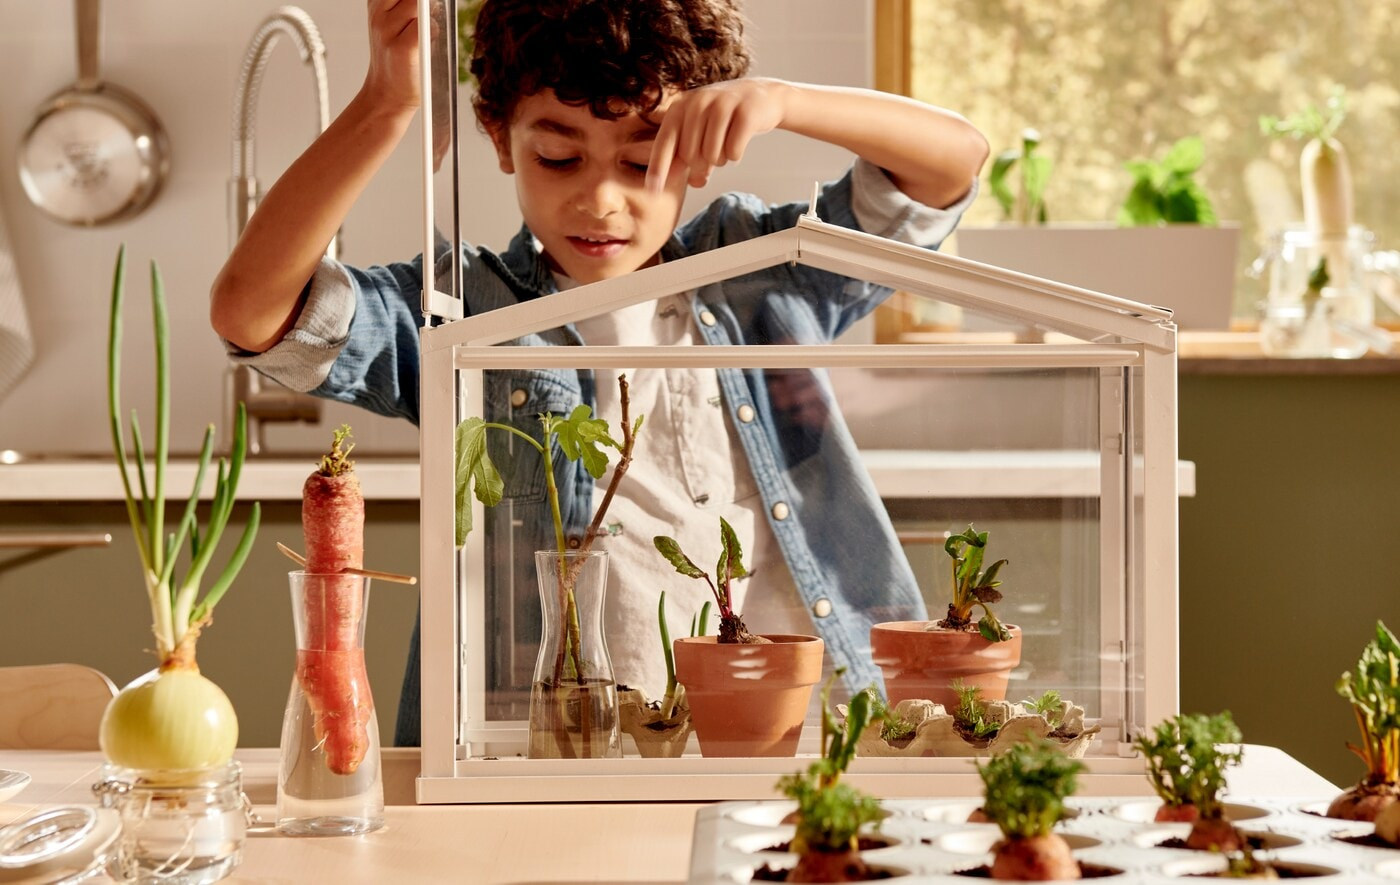 Link to 'Let the growing season activate your child' - image of a boy peering down on young plants in a SOCKER greenhouse.